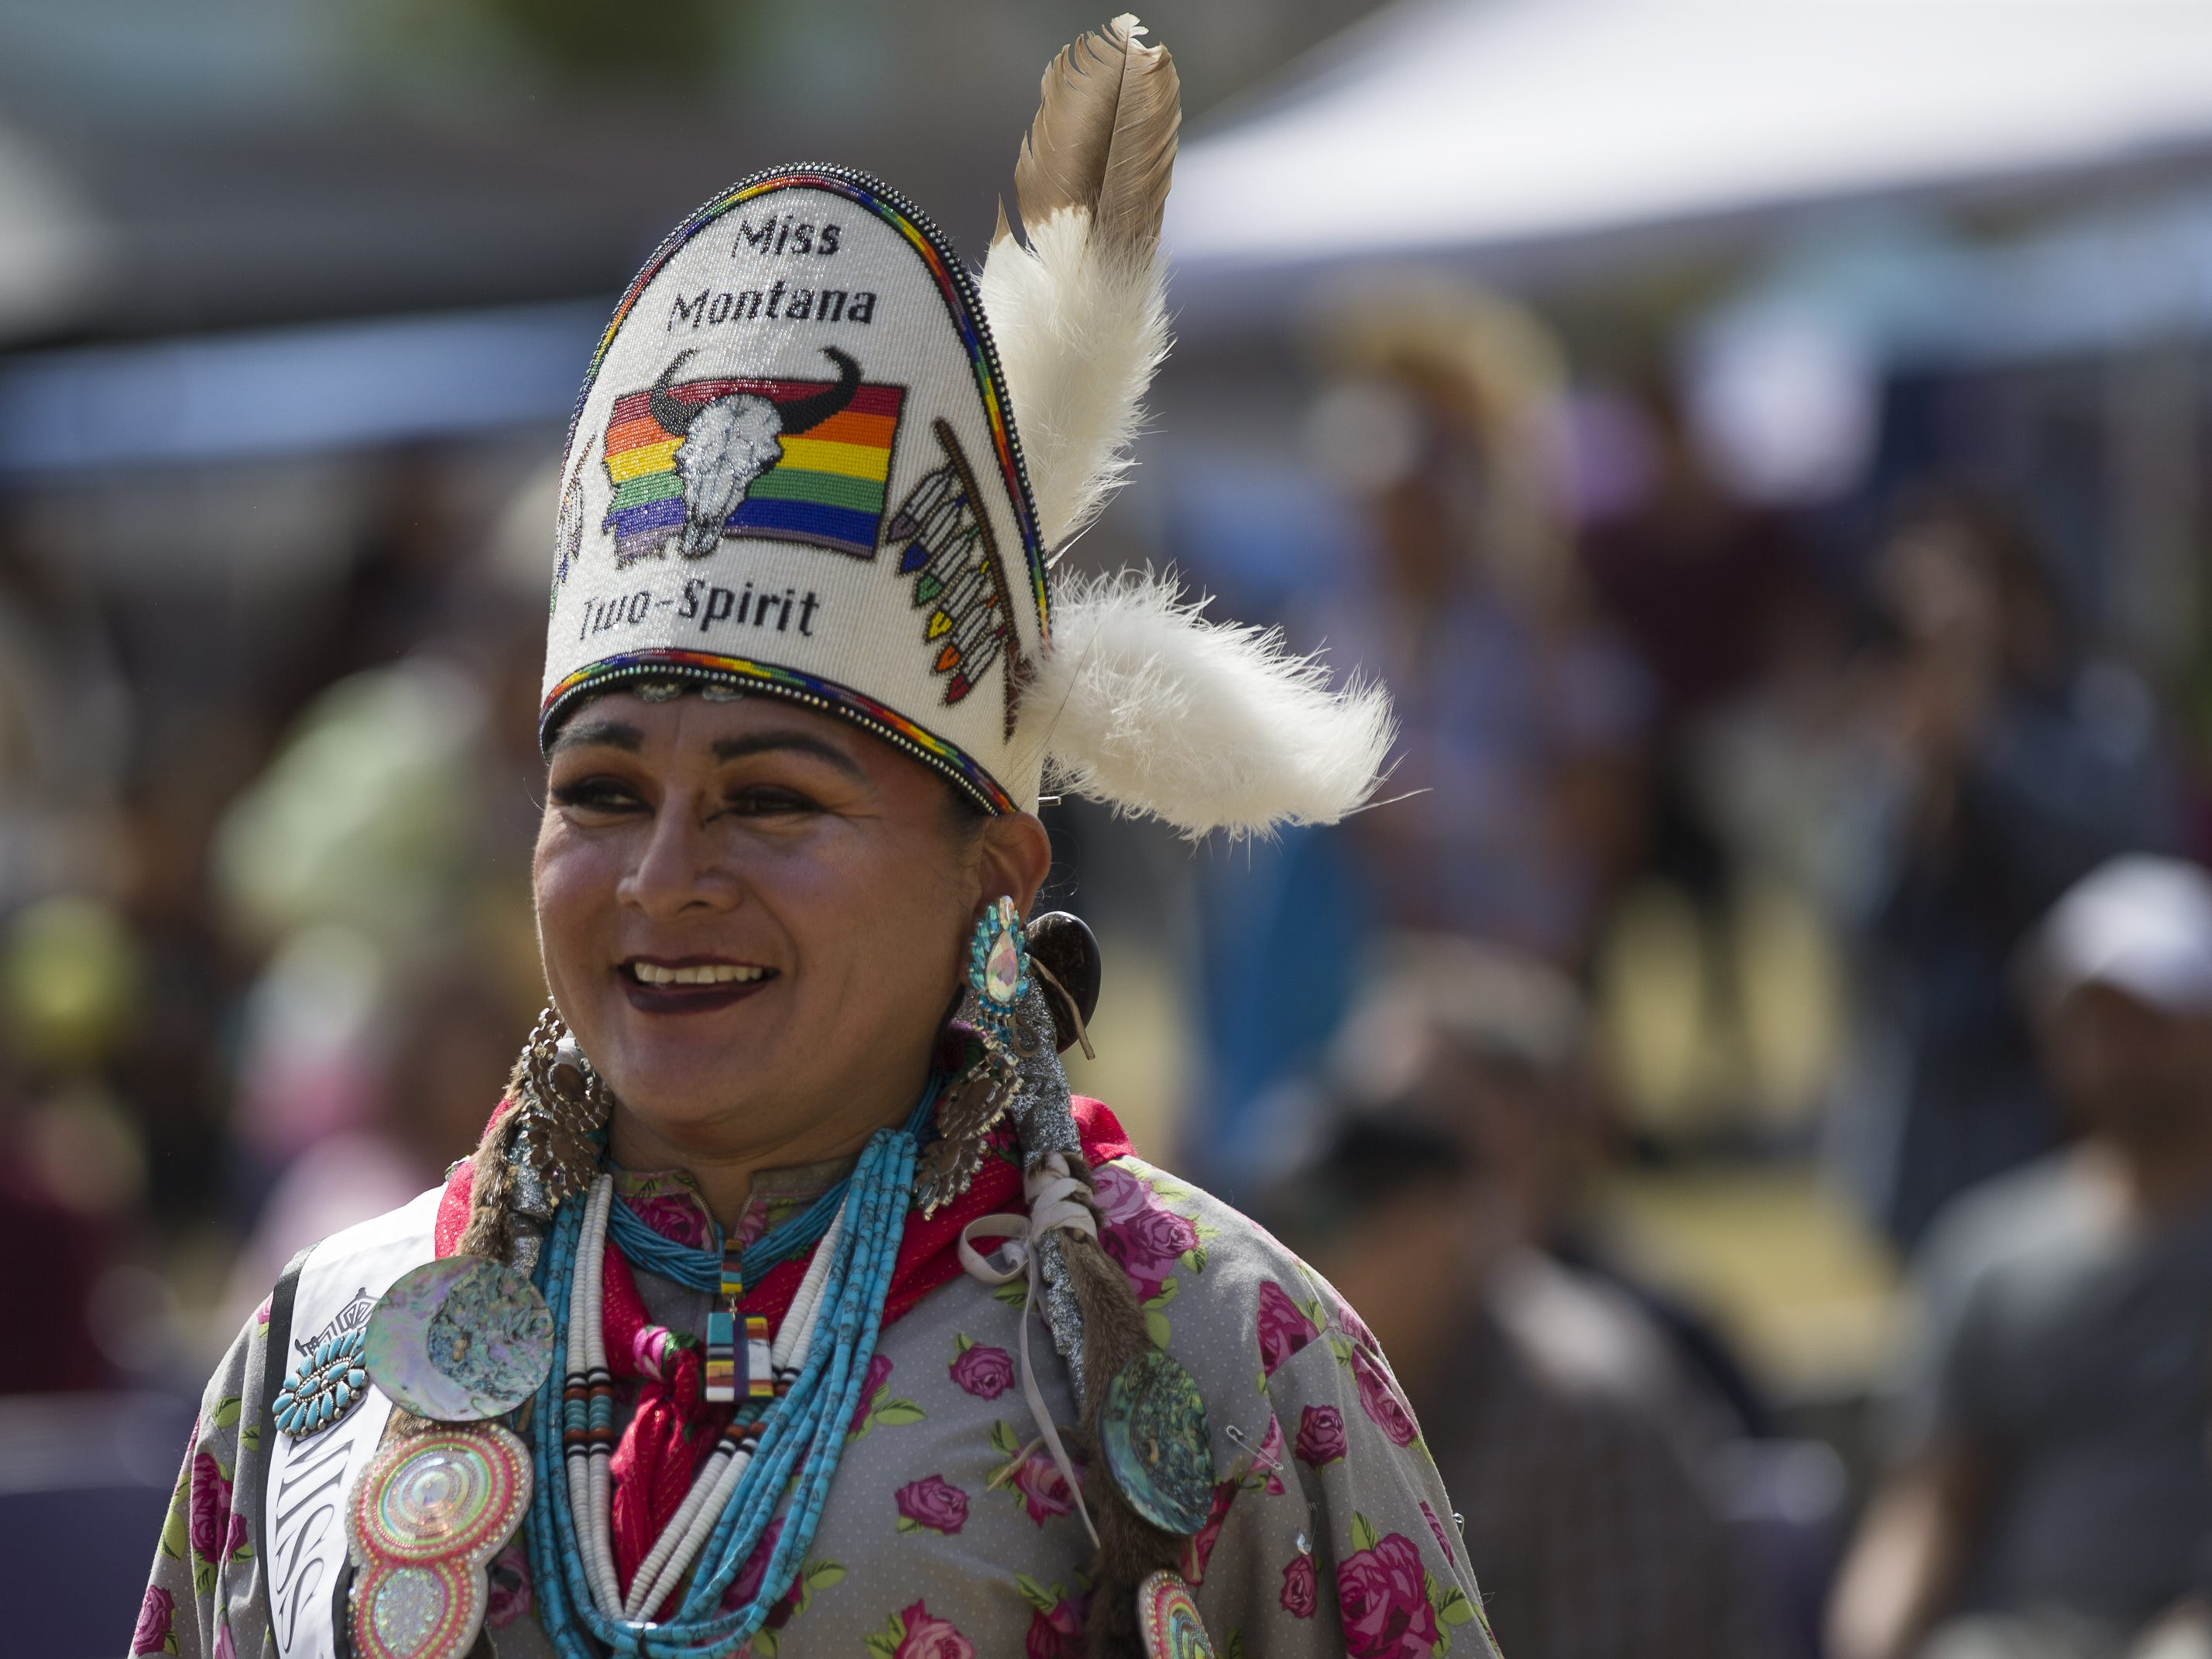 Buffalo Barbie, 2019's Miss Montana Two Spirit, dances at the Native Two Spirit Powwow at South Mountain Community College in Phoenix, Ariz. on Saturday, March 9, 2019. The powwow was the first of its kind in Arizona, featuring members who identified as two spirit, and members who did not, dancing together.